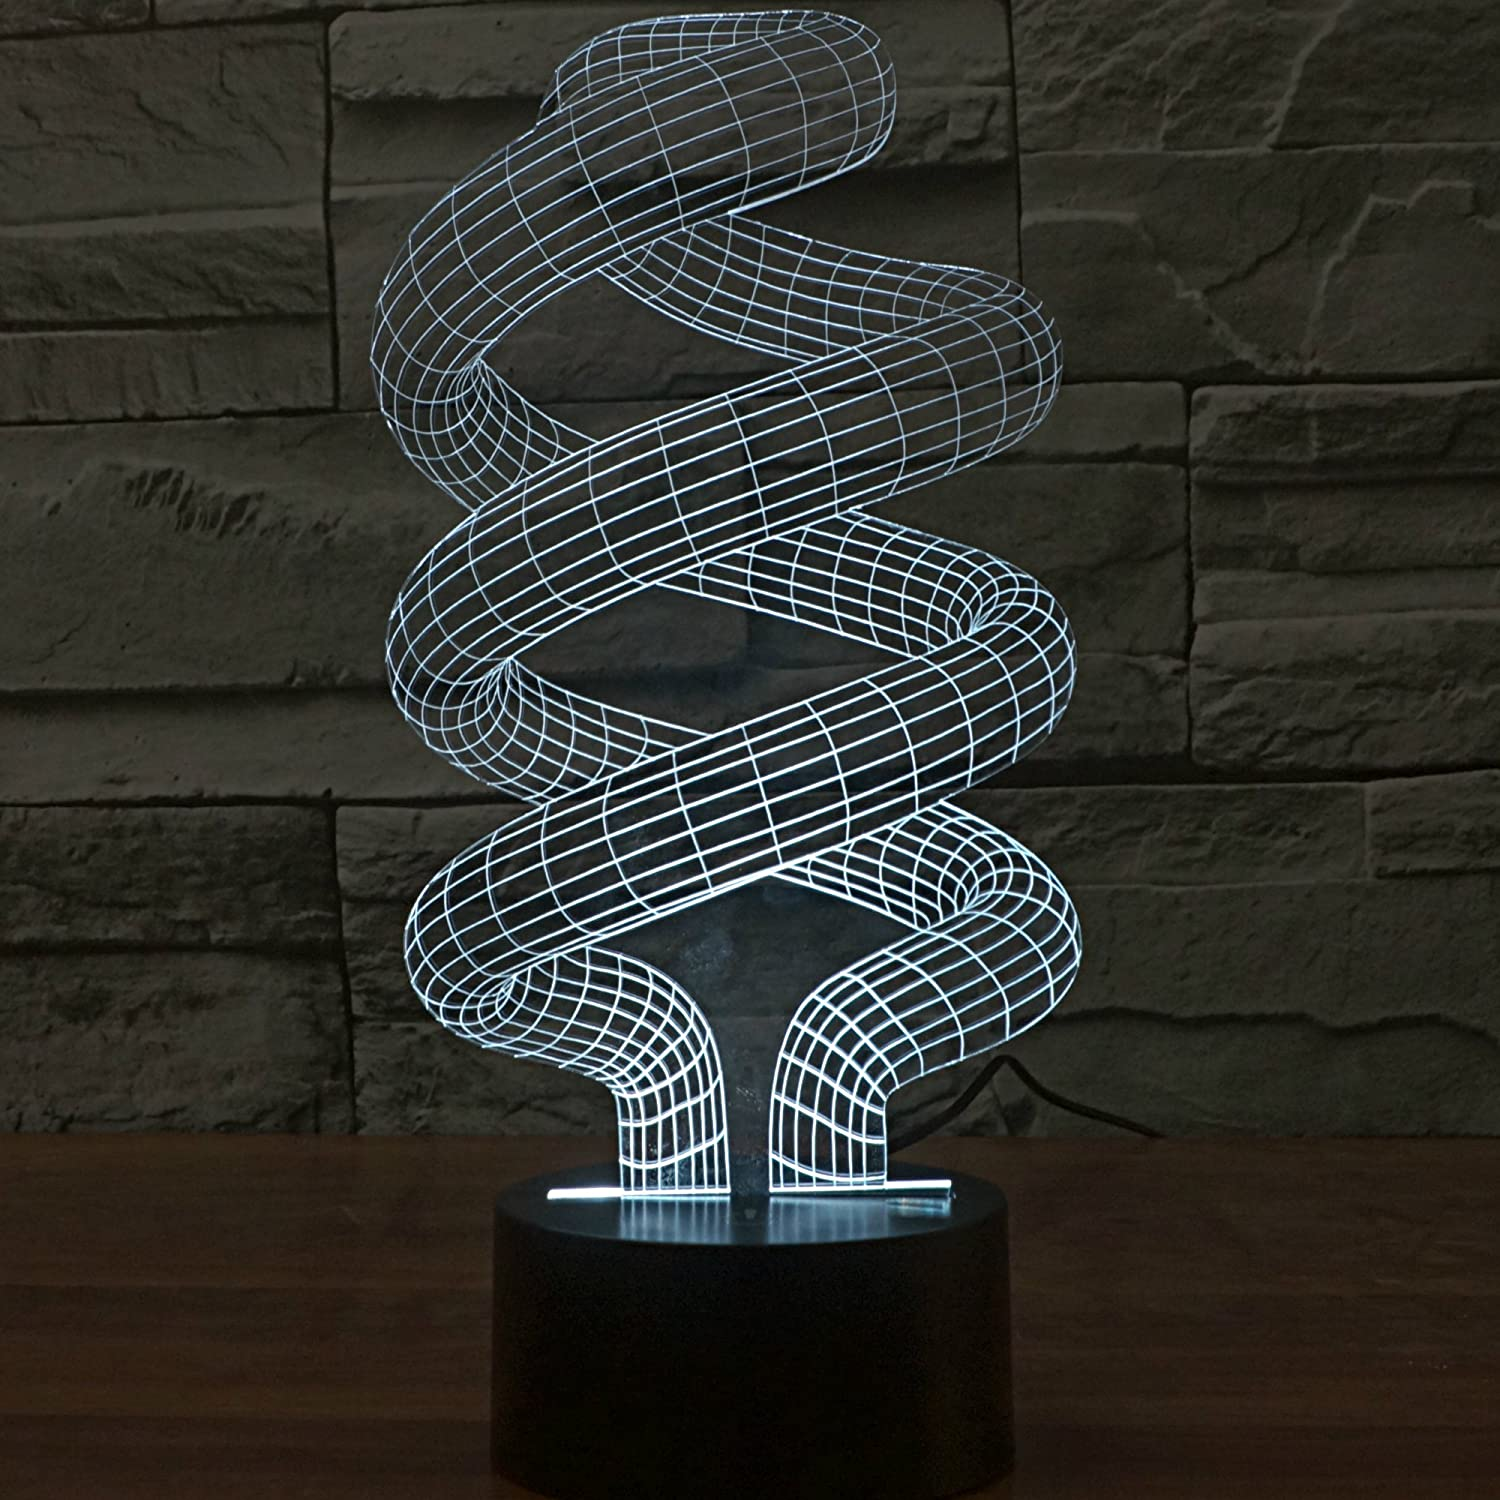 3D DNA Spiral Light by Playtime 123 is a Great Nightlight with a Soft Glow  for Kids. These Lights Make Beautiful Gifts for Mom and Amazing Desk Lamps  for ... - 3D DNA Spiral Light By Playtime 123 Is A Great Nightlight With A